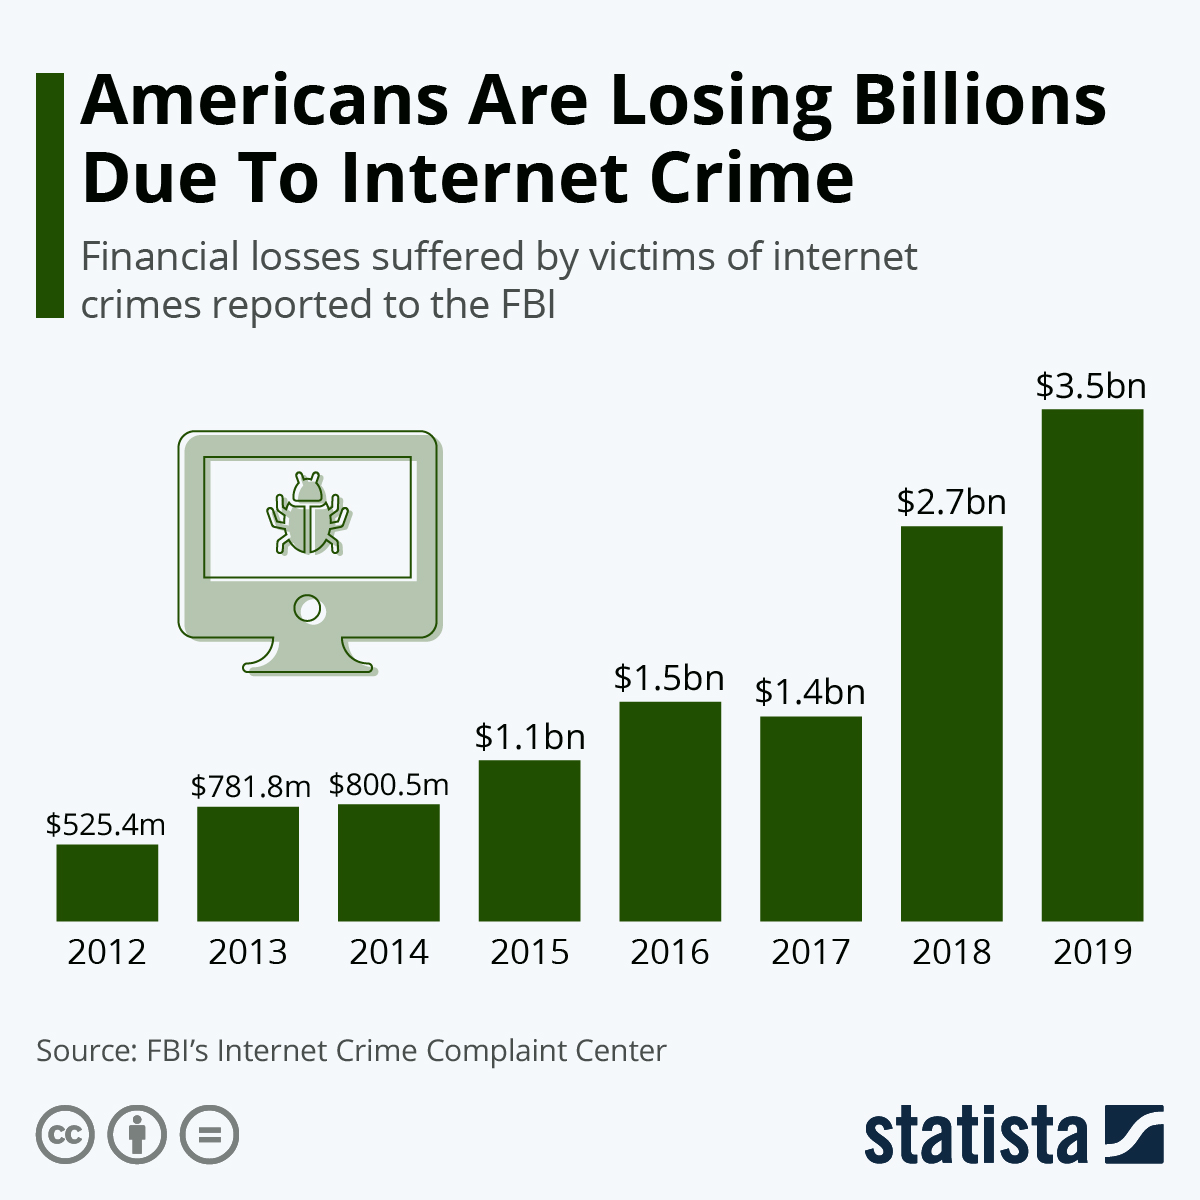 The billions of dollars lost due to Internet Crime over time